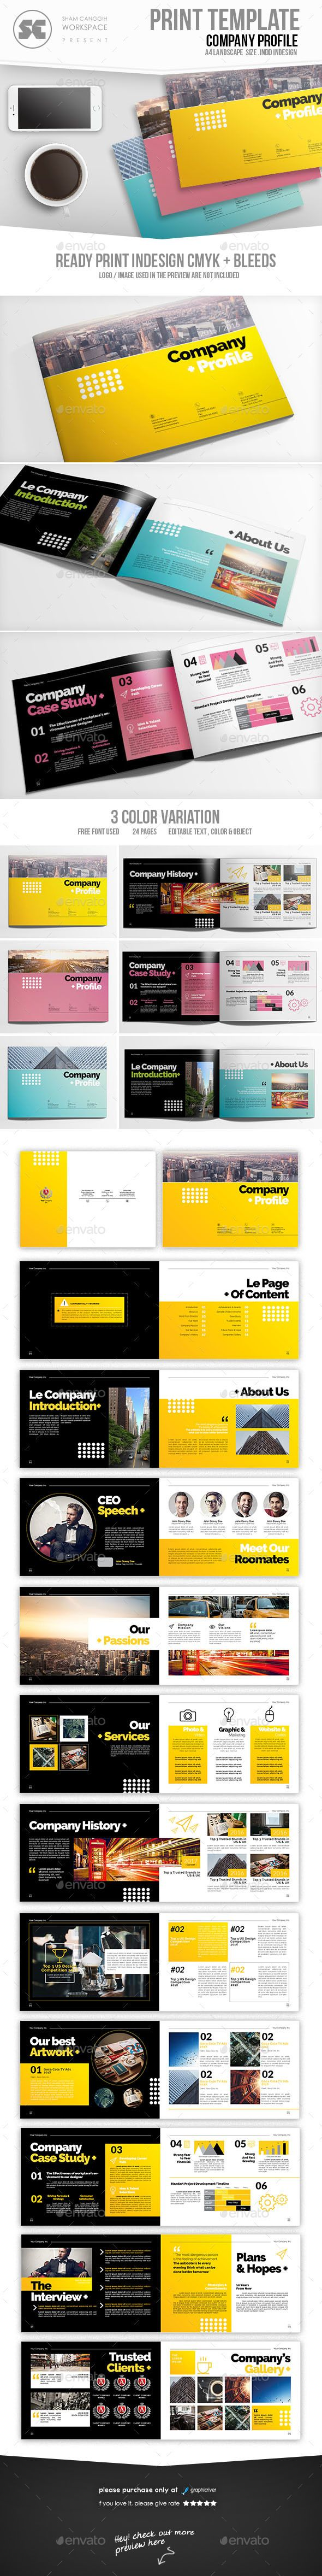 #Company Profile - #Corporate #Brochures Download here: https://graphicriver.net/item/company-profile/17314502?ref=alena994